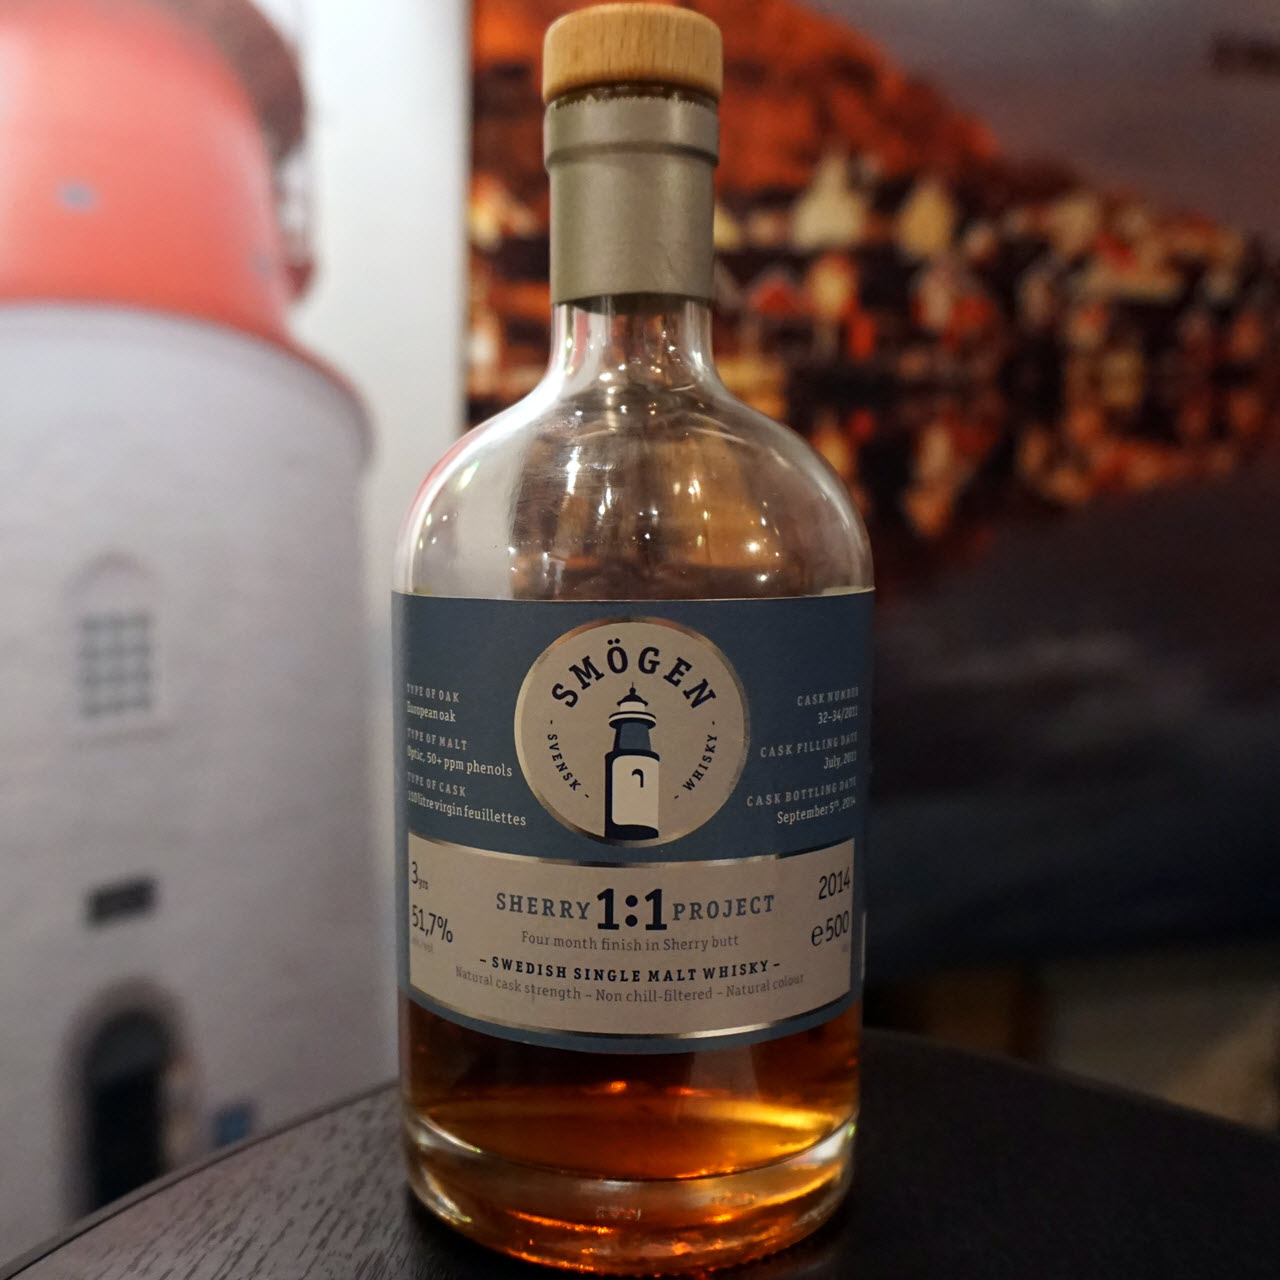 Nordic Whisky #19 - Smögen Sherry Project 1:1